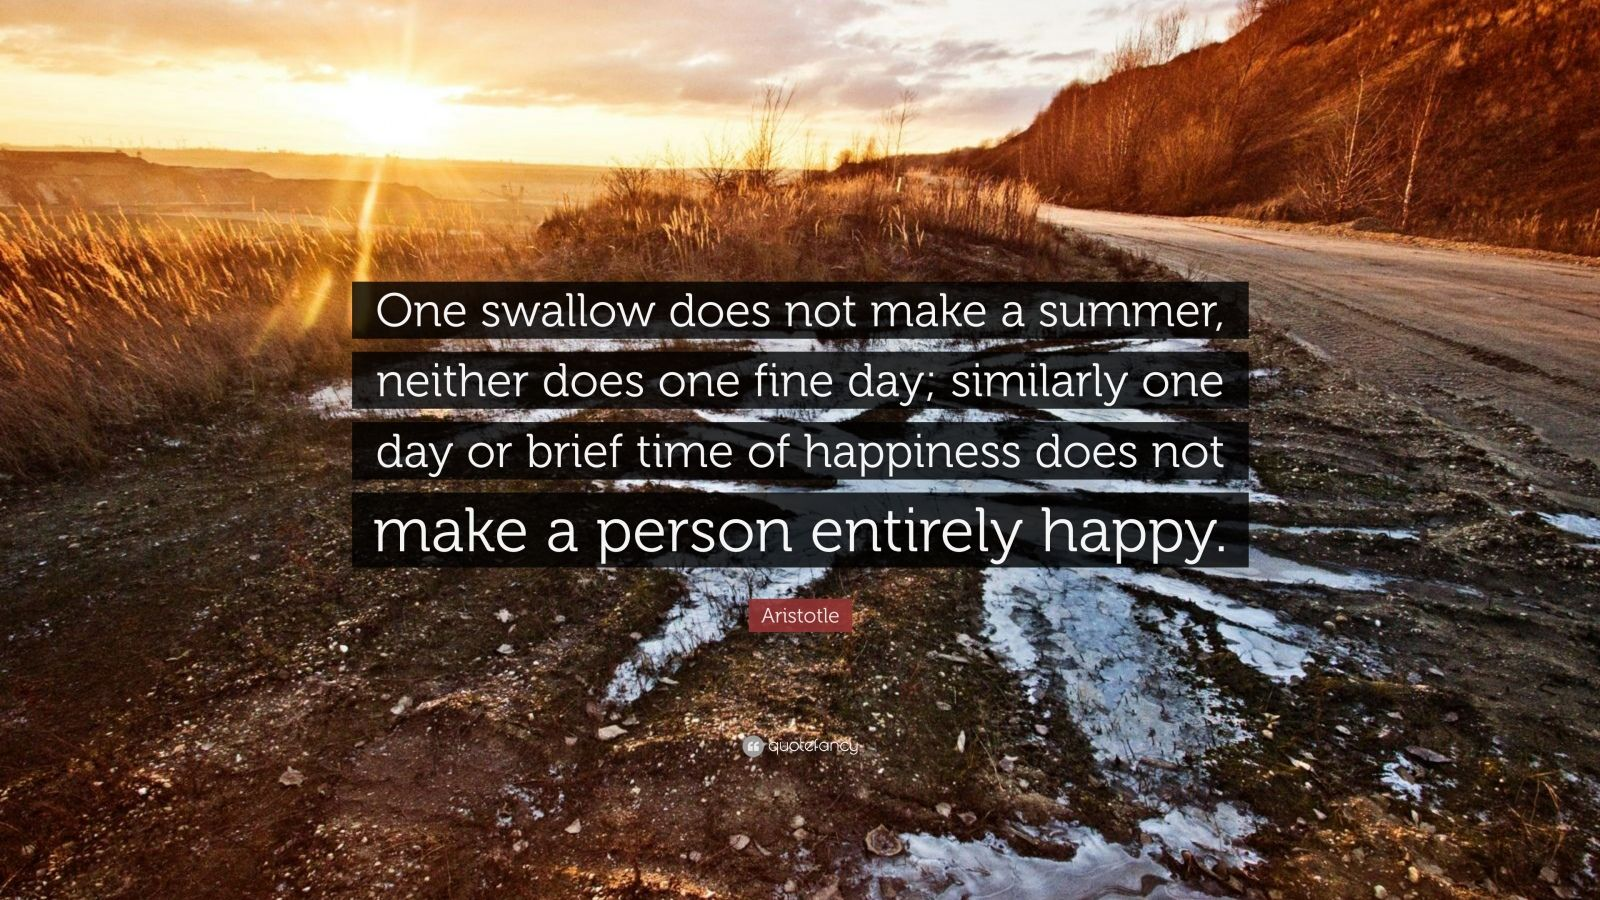 """Aristotle Quote: """"One swallow does not make a summer, neither does one fine day; similarly one day or brief time of happiness does not make a person entirely happy."""""""